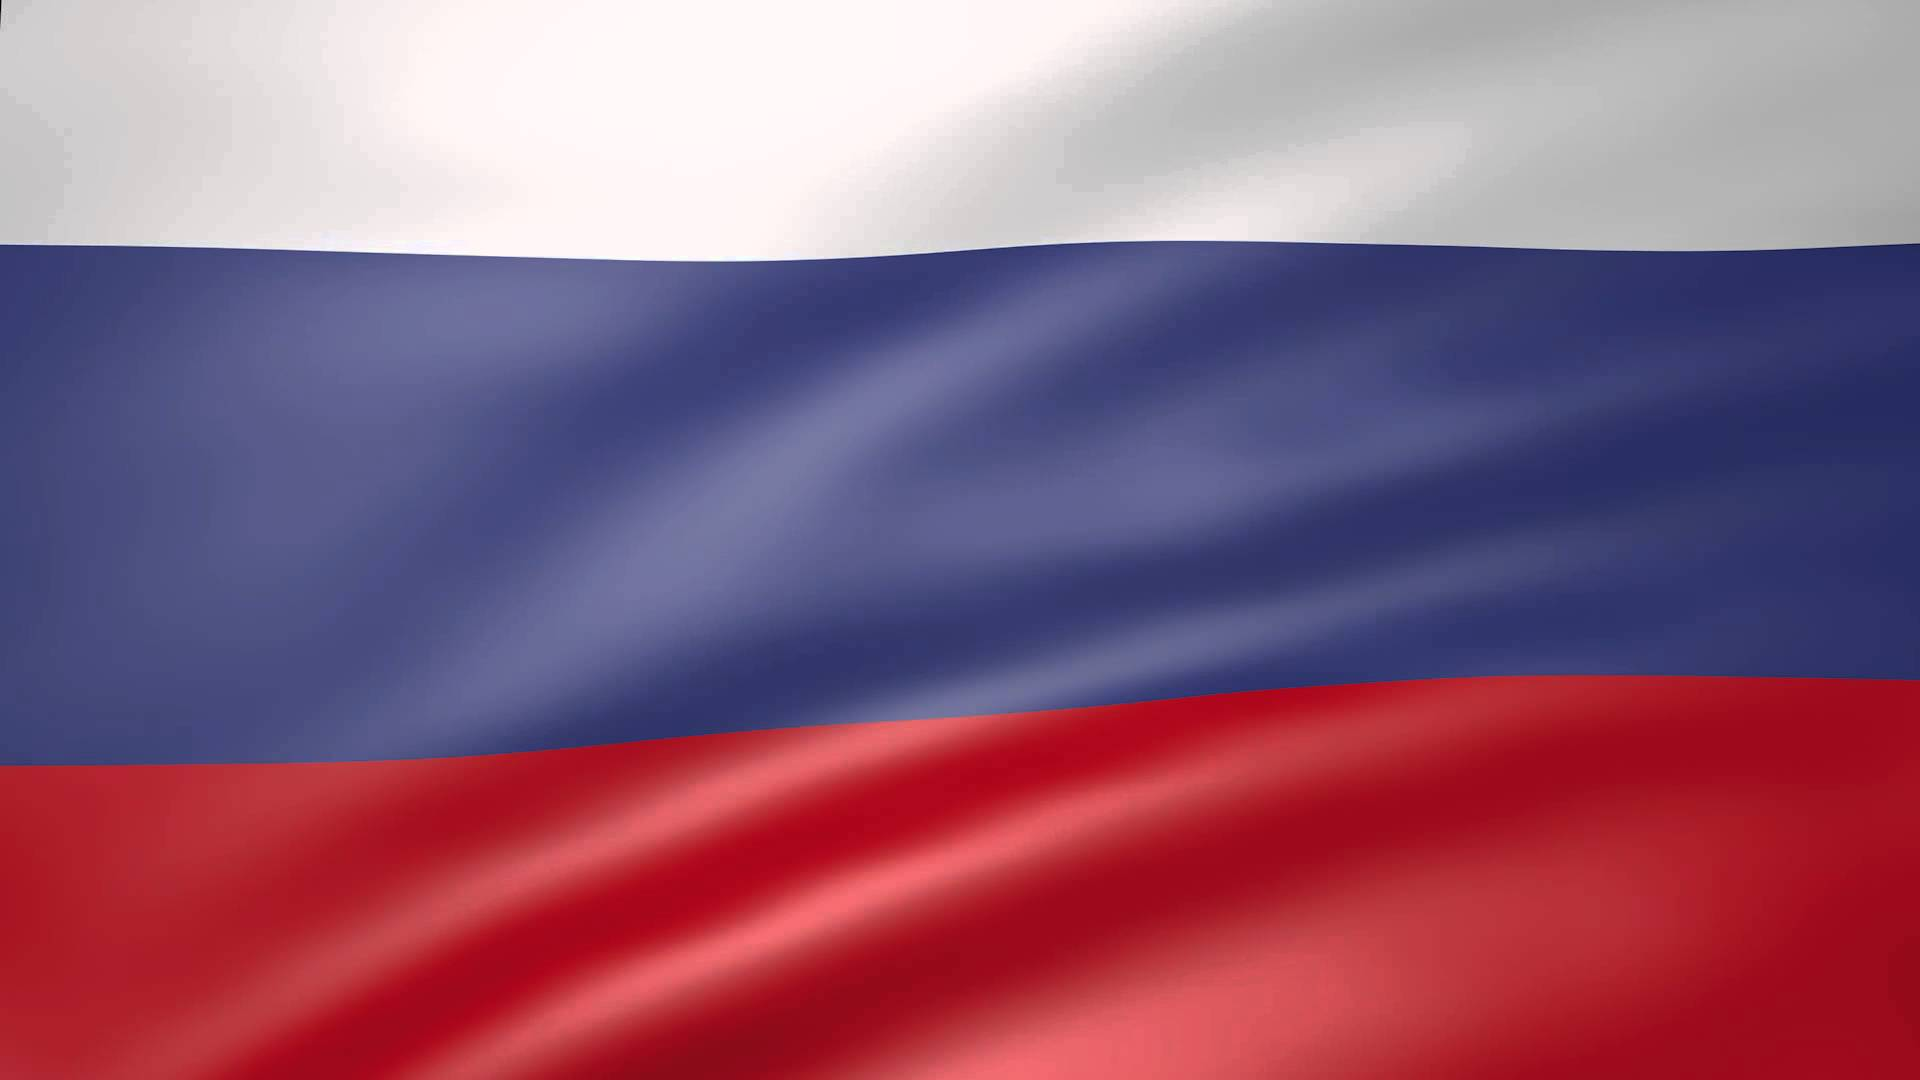 Flag Of Russia Backgrounds on Wallpapers Vista